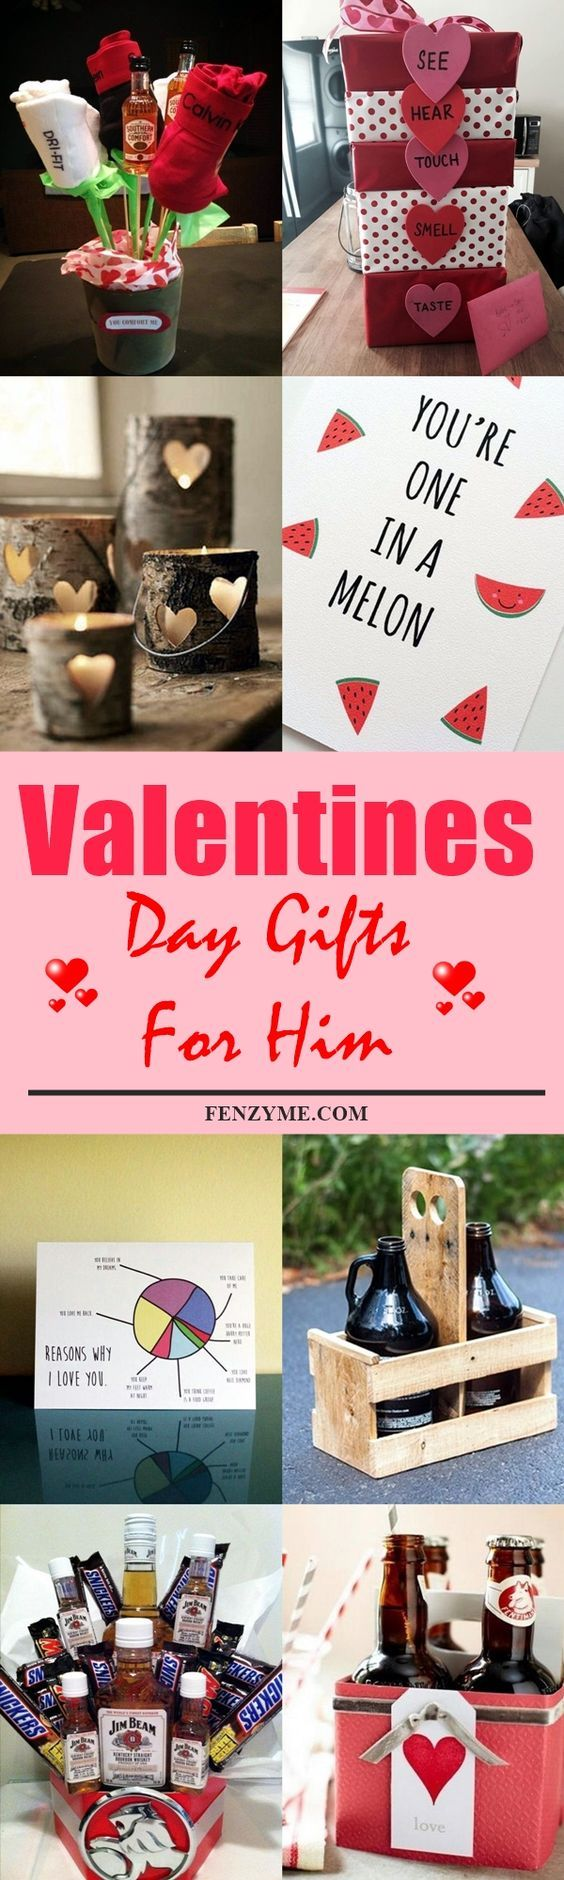 45 Handcrafted Valentines Day Gifts For Him to Express your Feelings | Valentines Day Gifts for Him | Fenzyme.com